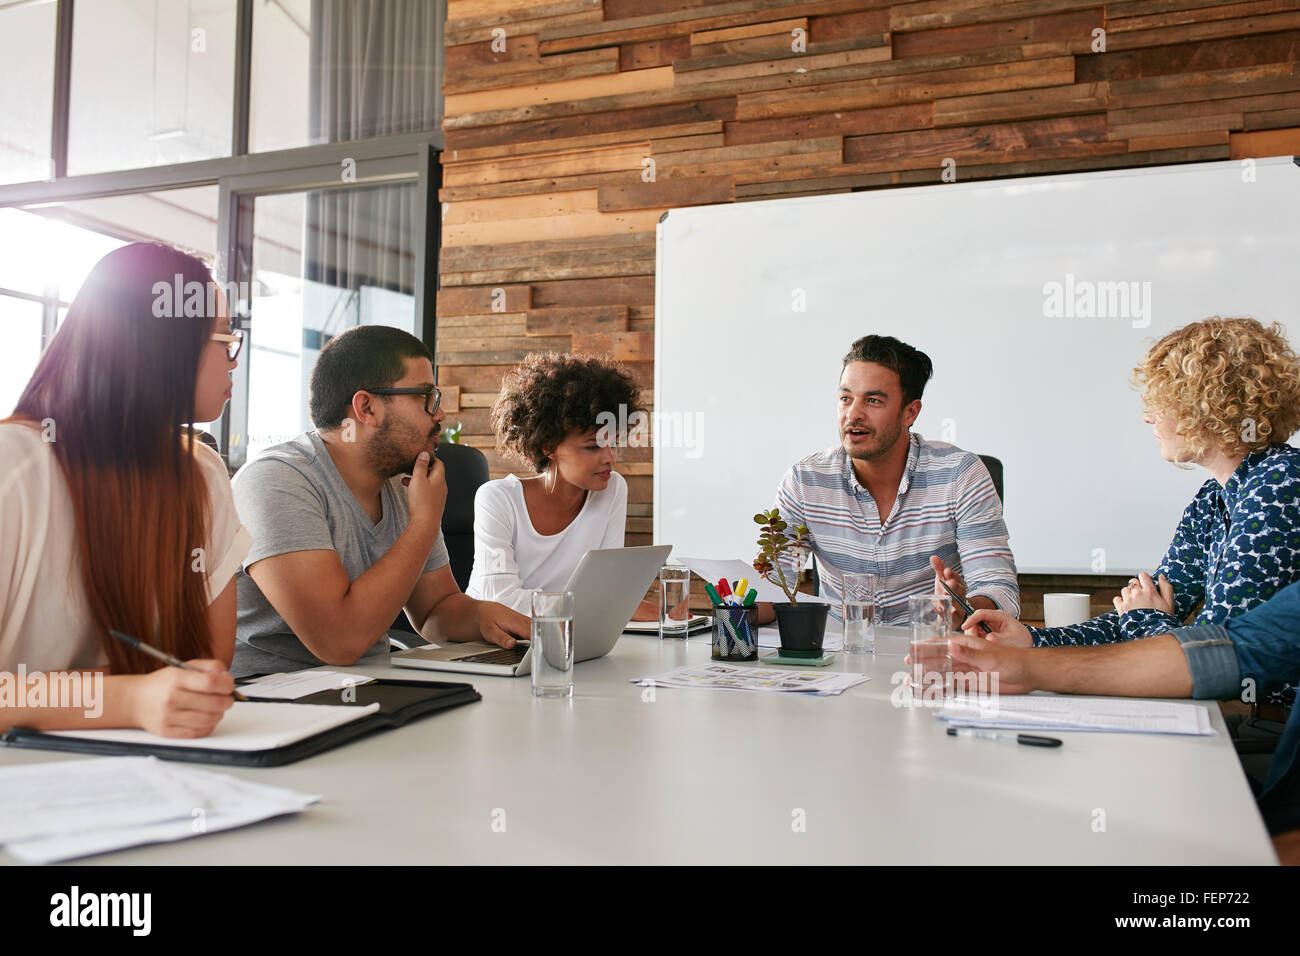 Shot of a group of young business professionals having a meeting in boardroom. Office workers discussing new business - Stock Image